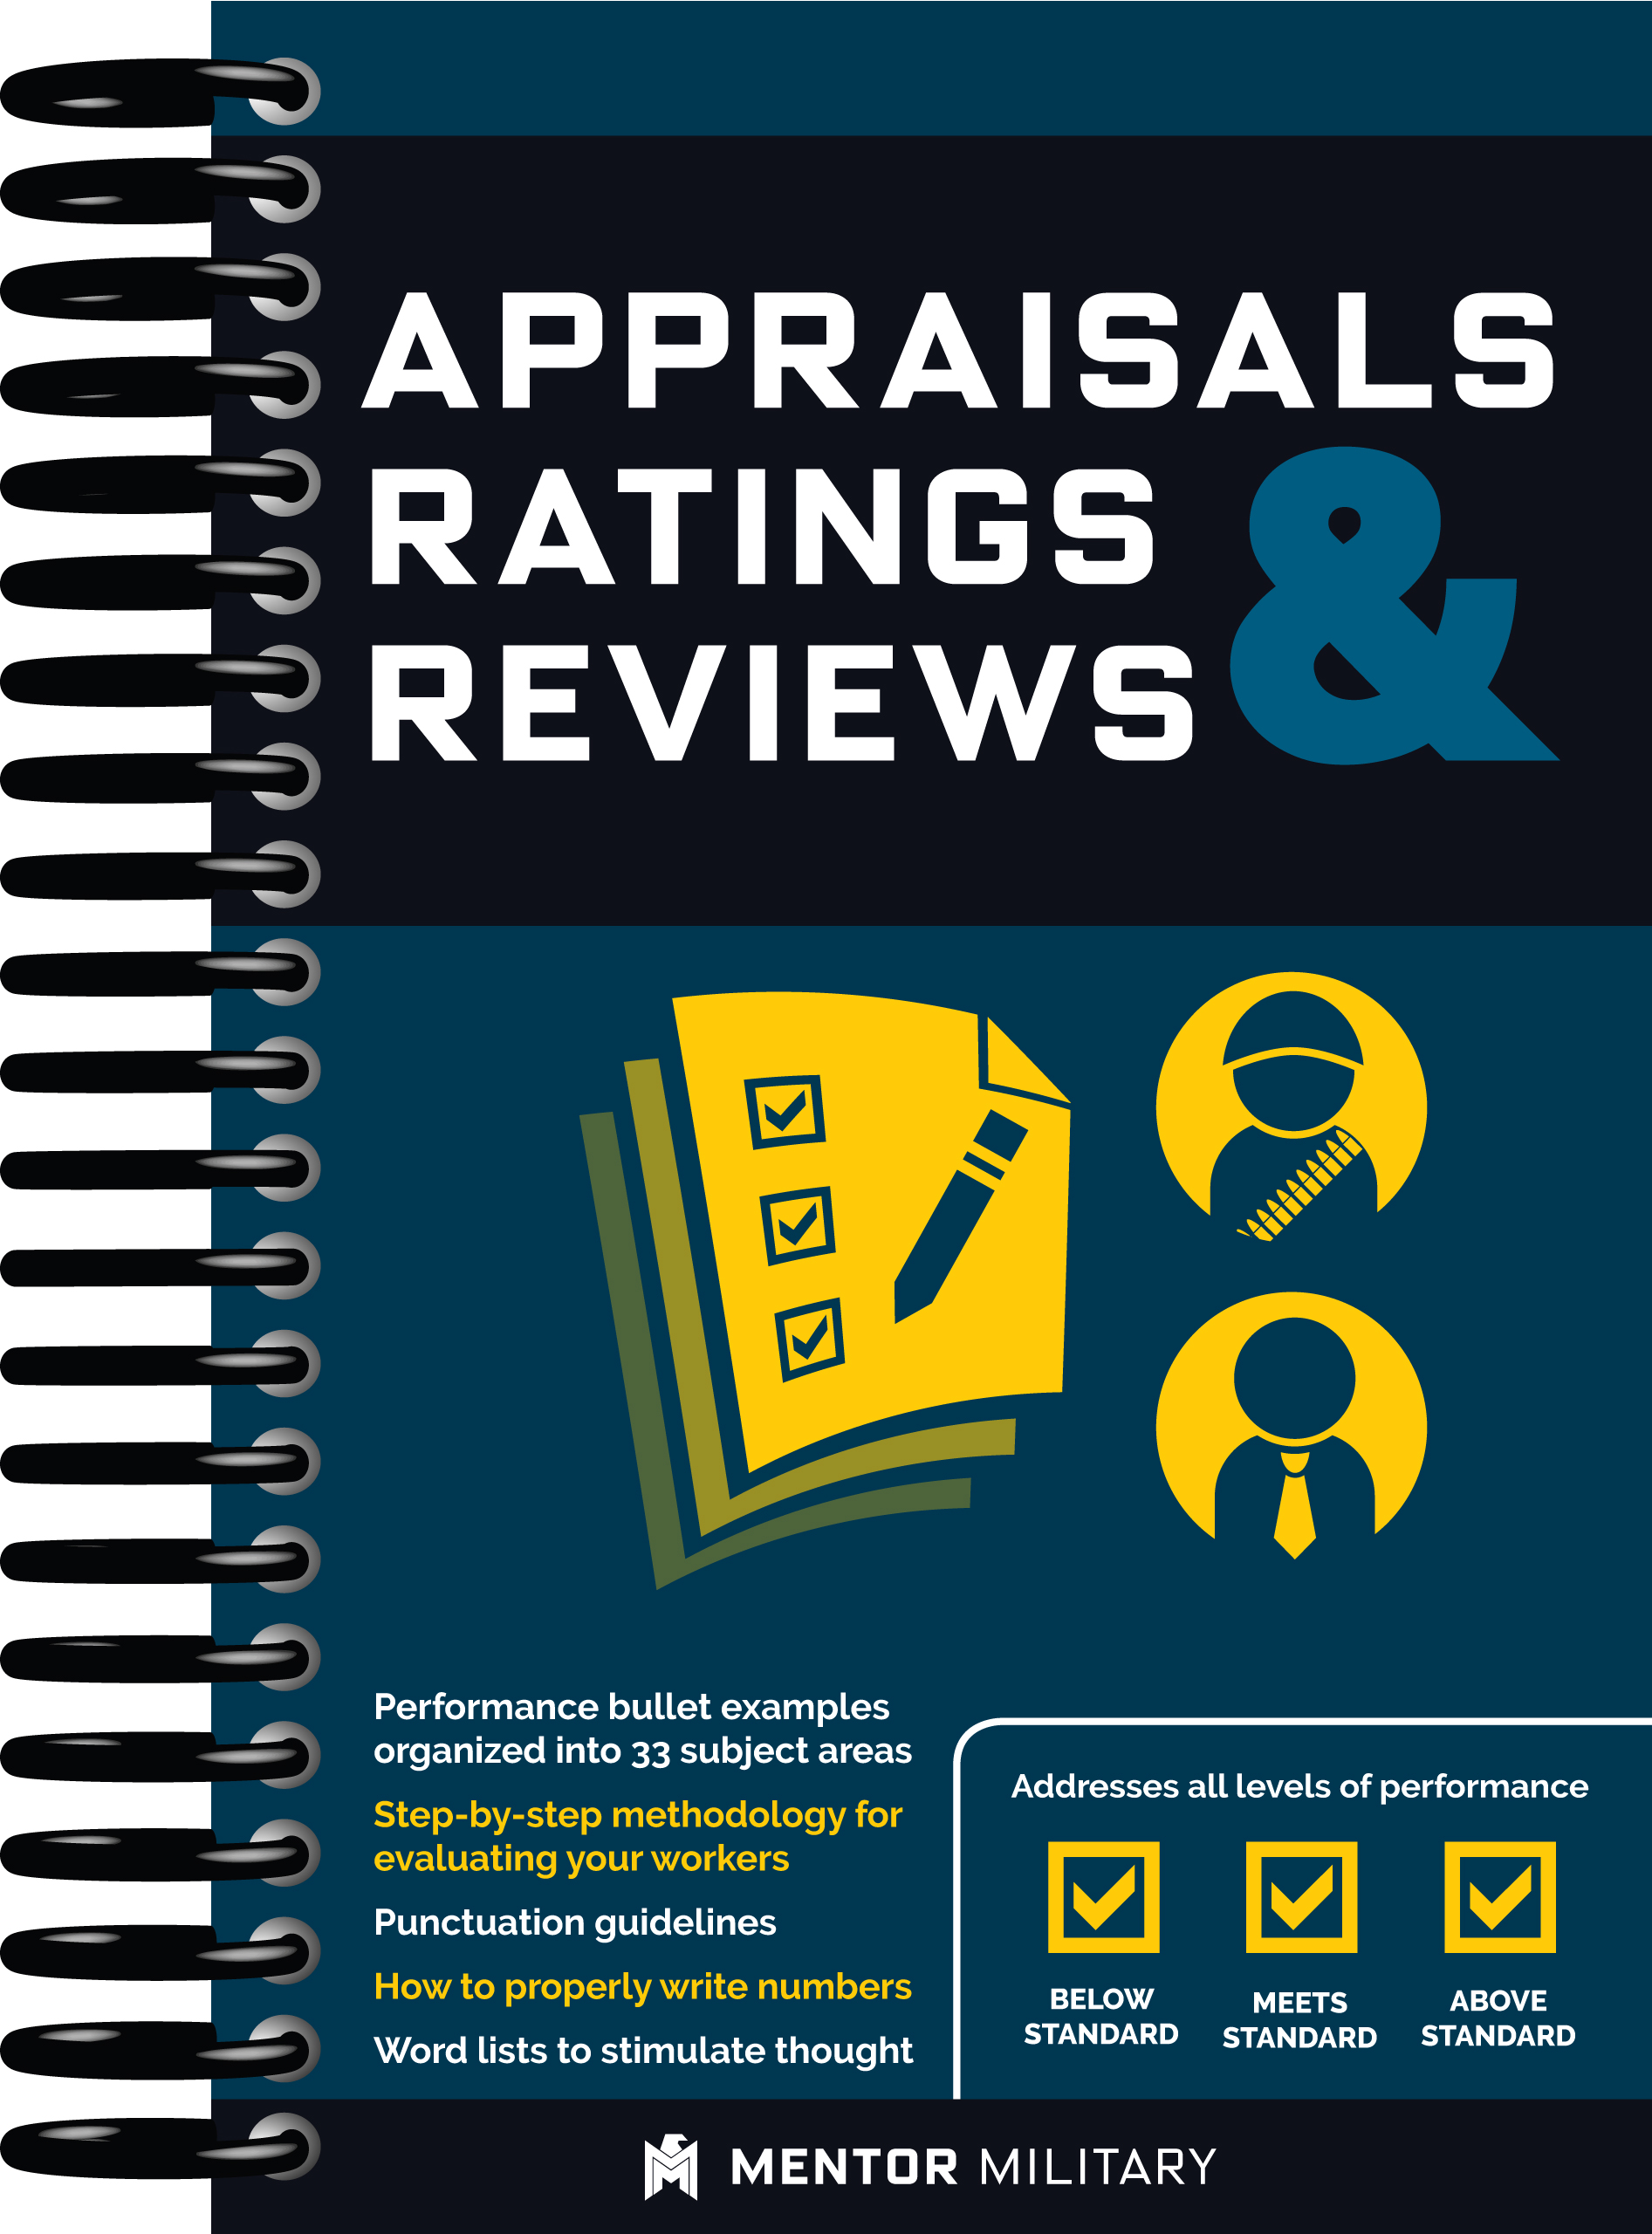 Appraisals, Ratings & Reviews (ARR) for Servicemembers and Civilians